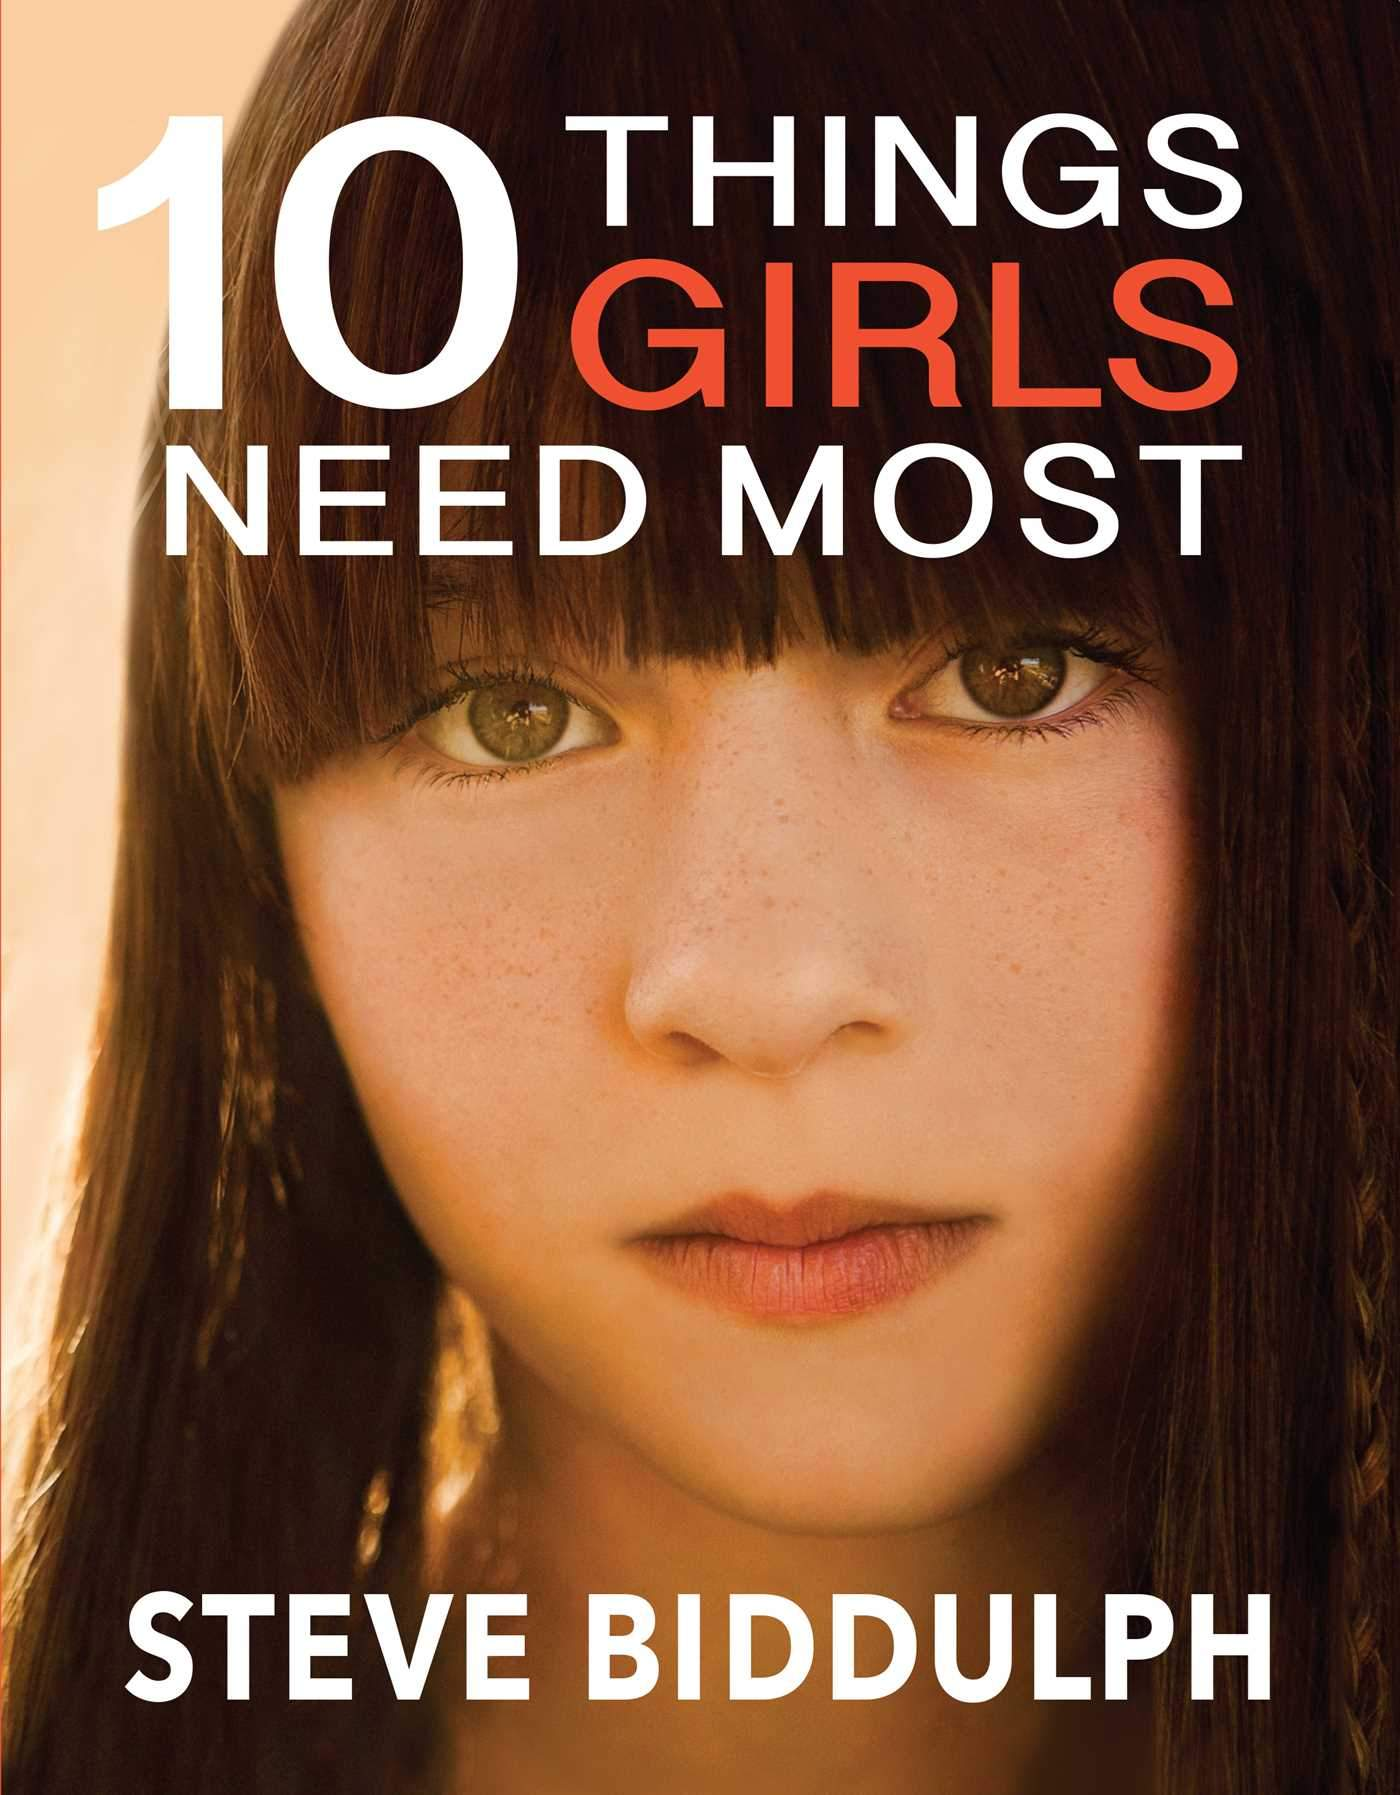 10 Things Girls Need Most by Steve Biddulph, ISBN: 9781925048841